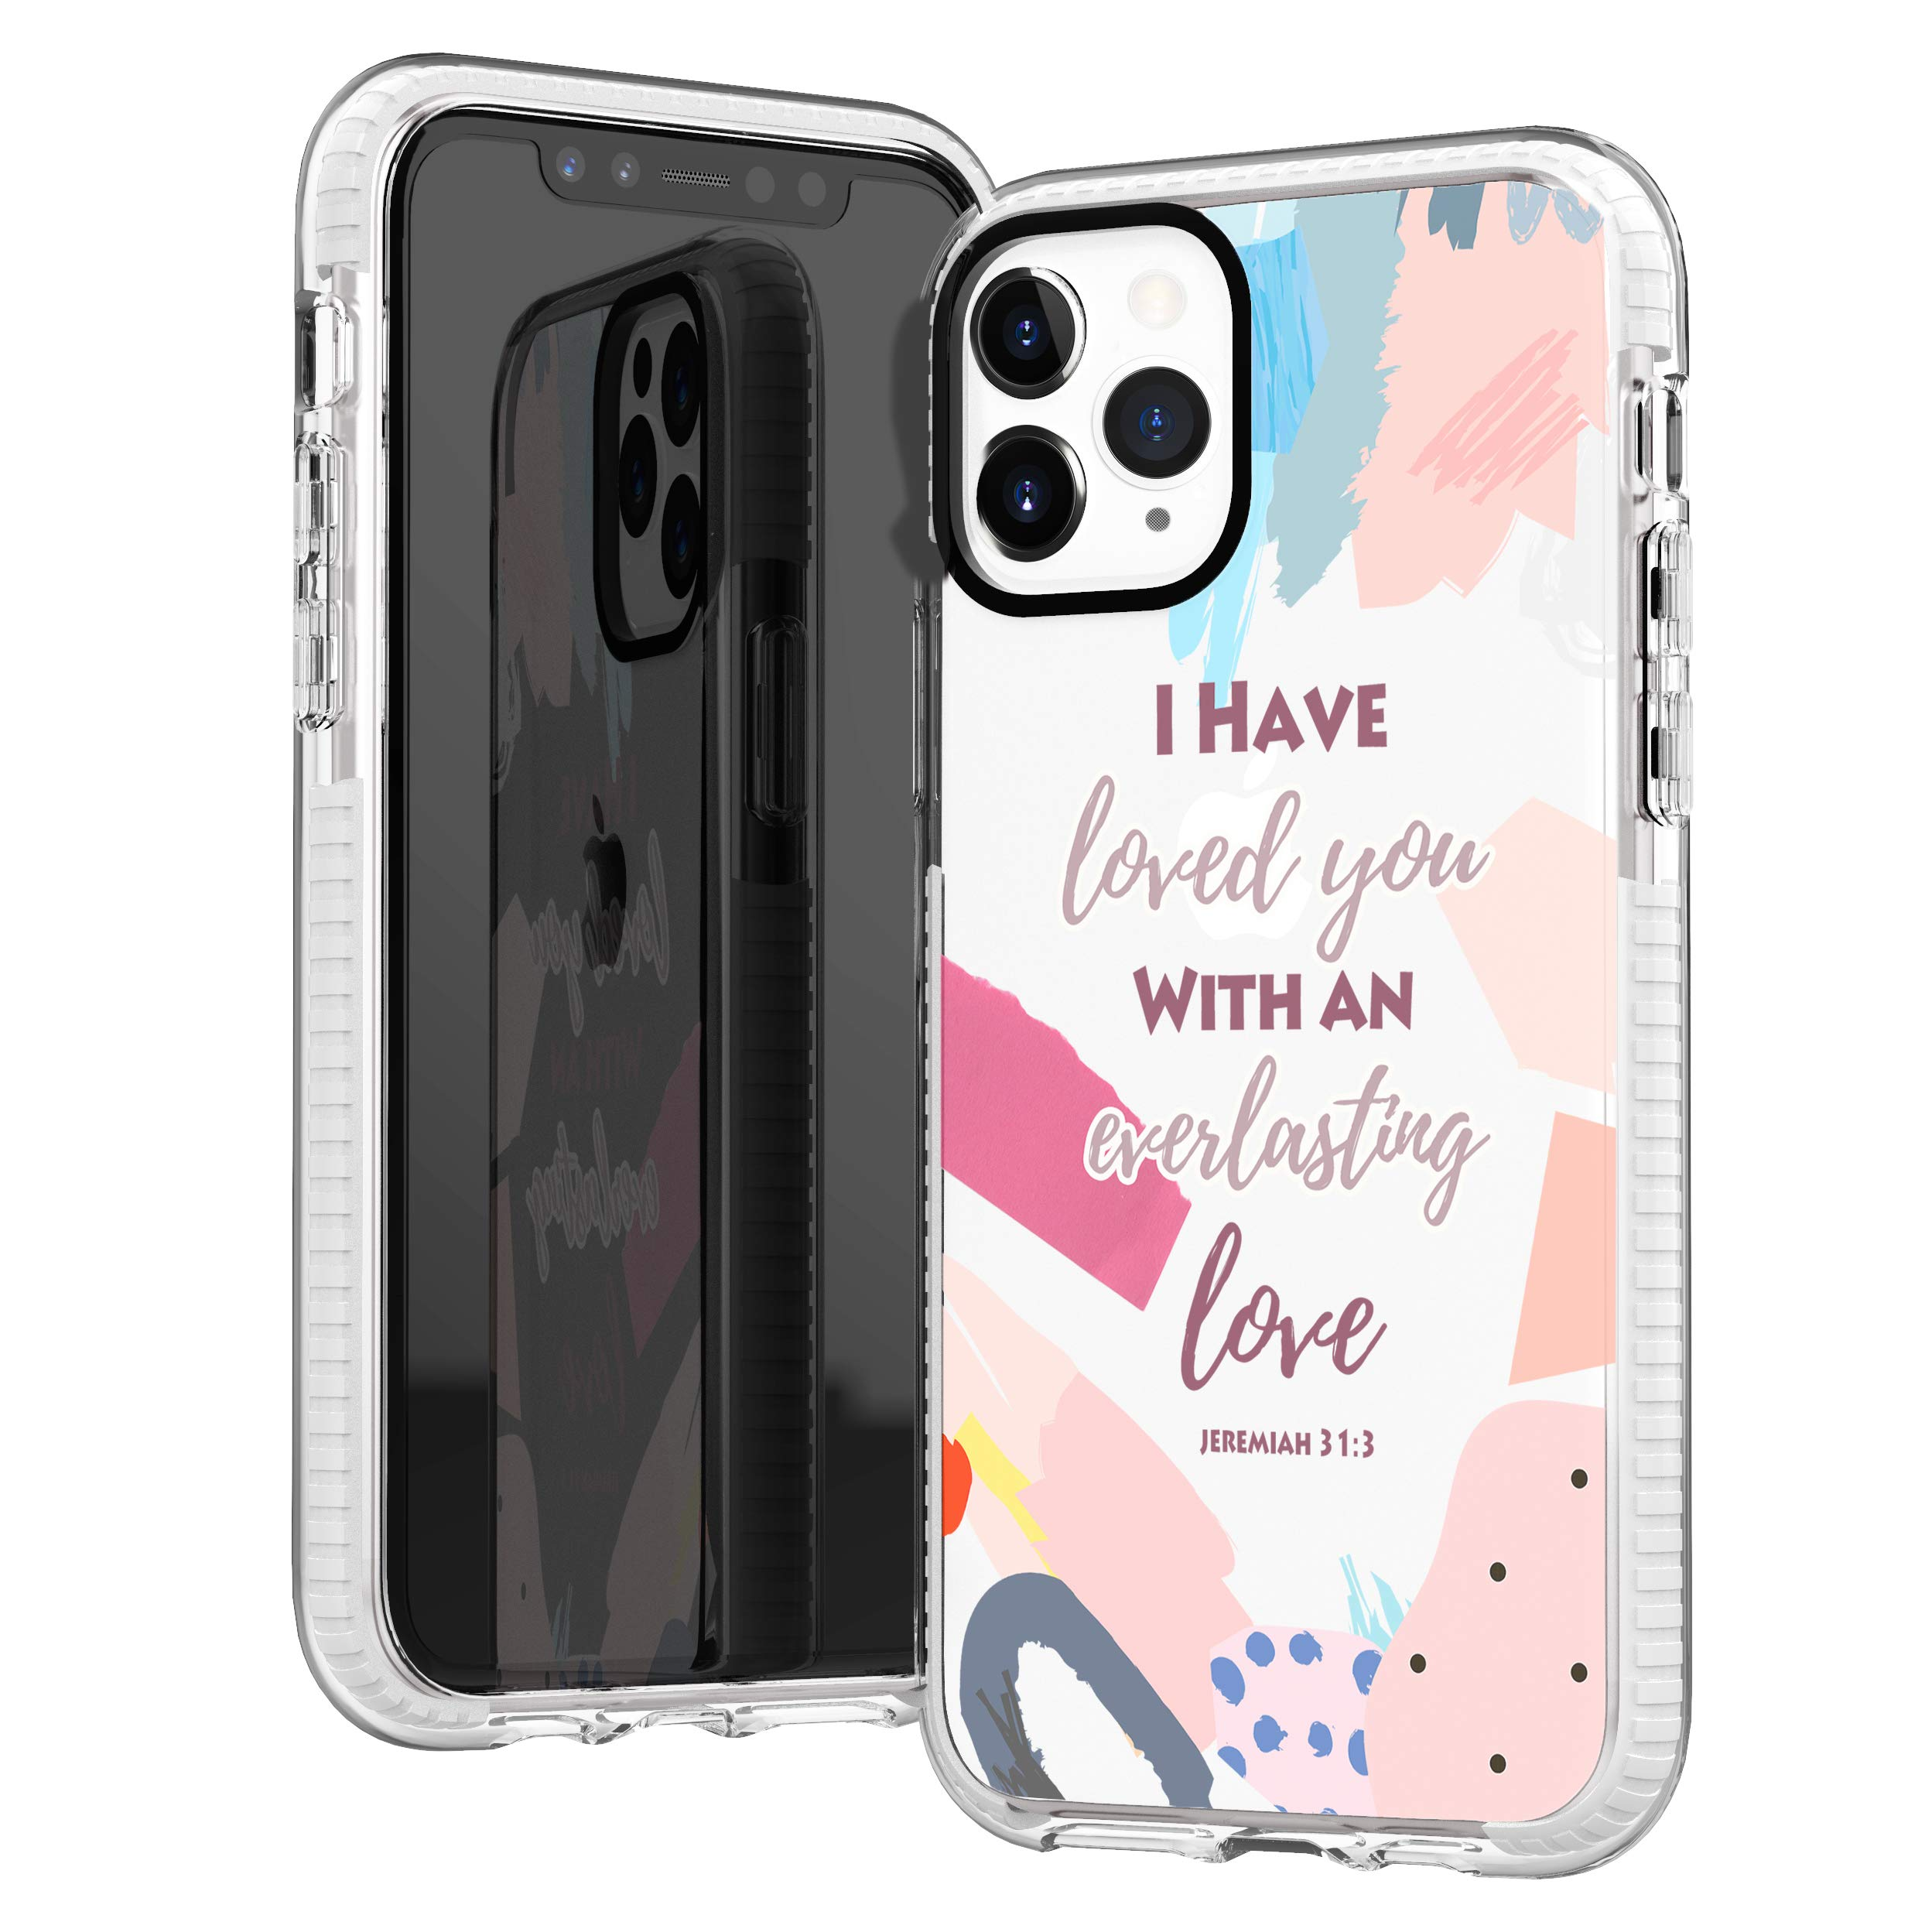 iPhone 11 Pro Max Case,Girls Women Trendy Cute Pink Abstract Graphic Painting Bible Verses Christian Inspirational Motivational Quotes Soft Protective Clear Case Compatible for iPhone 11 Pro Max